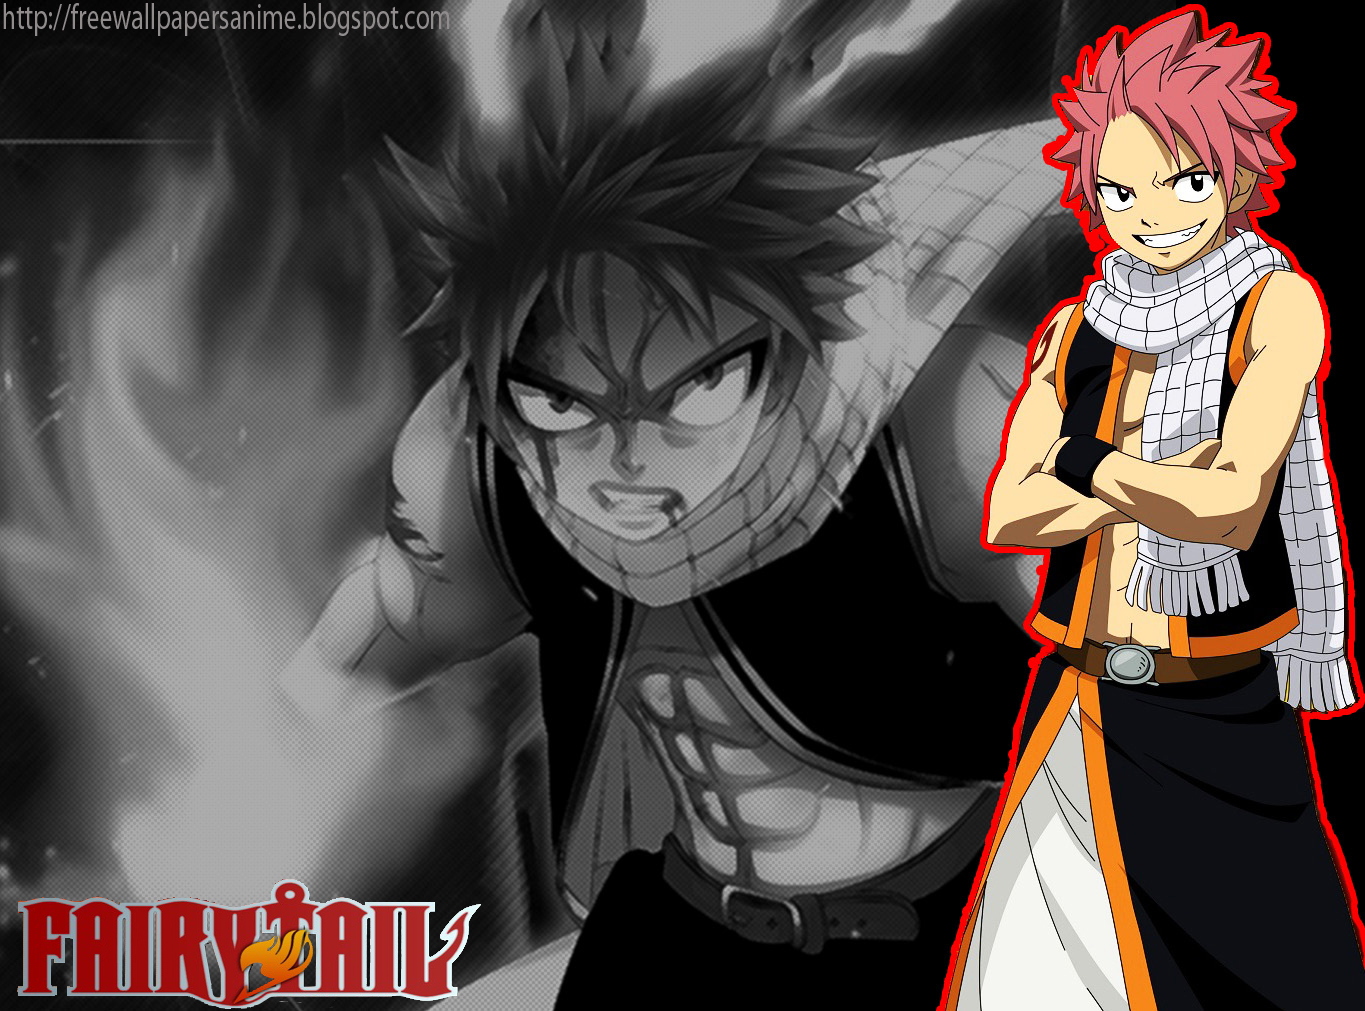 Natsu Fairy Tail Wallpapers Cool 1365x1011